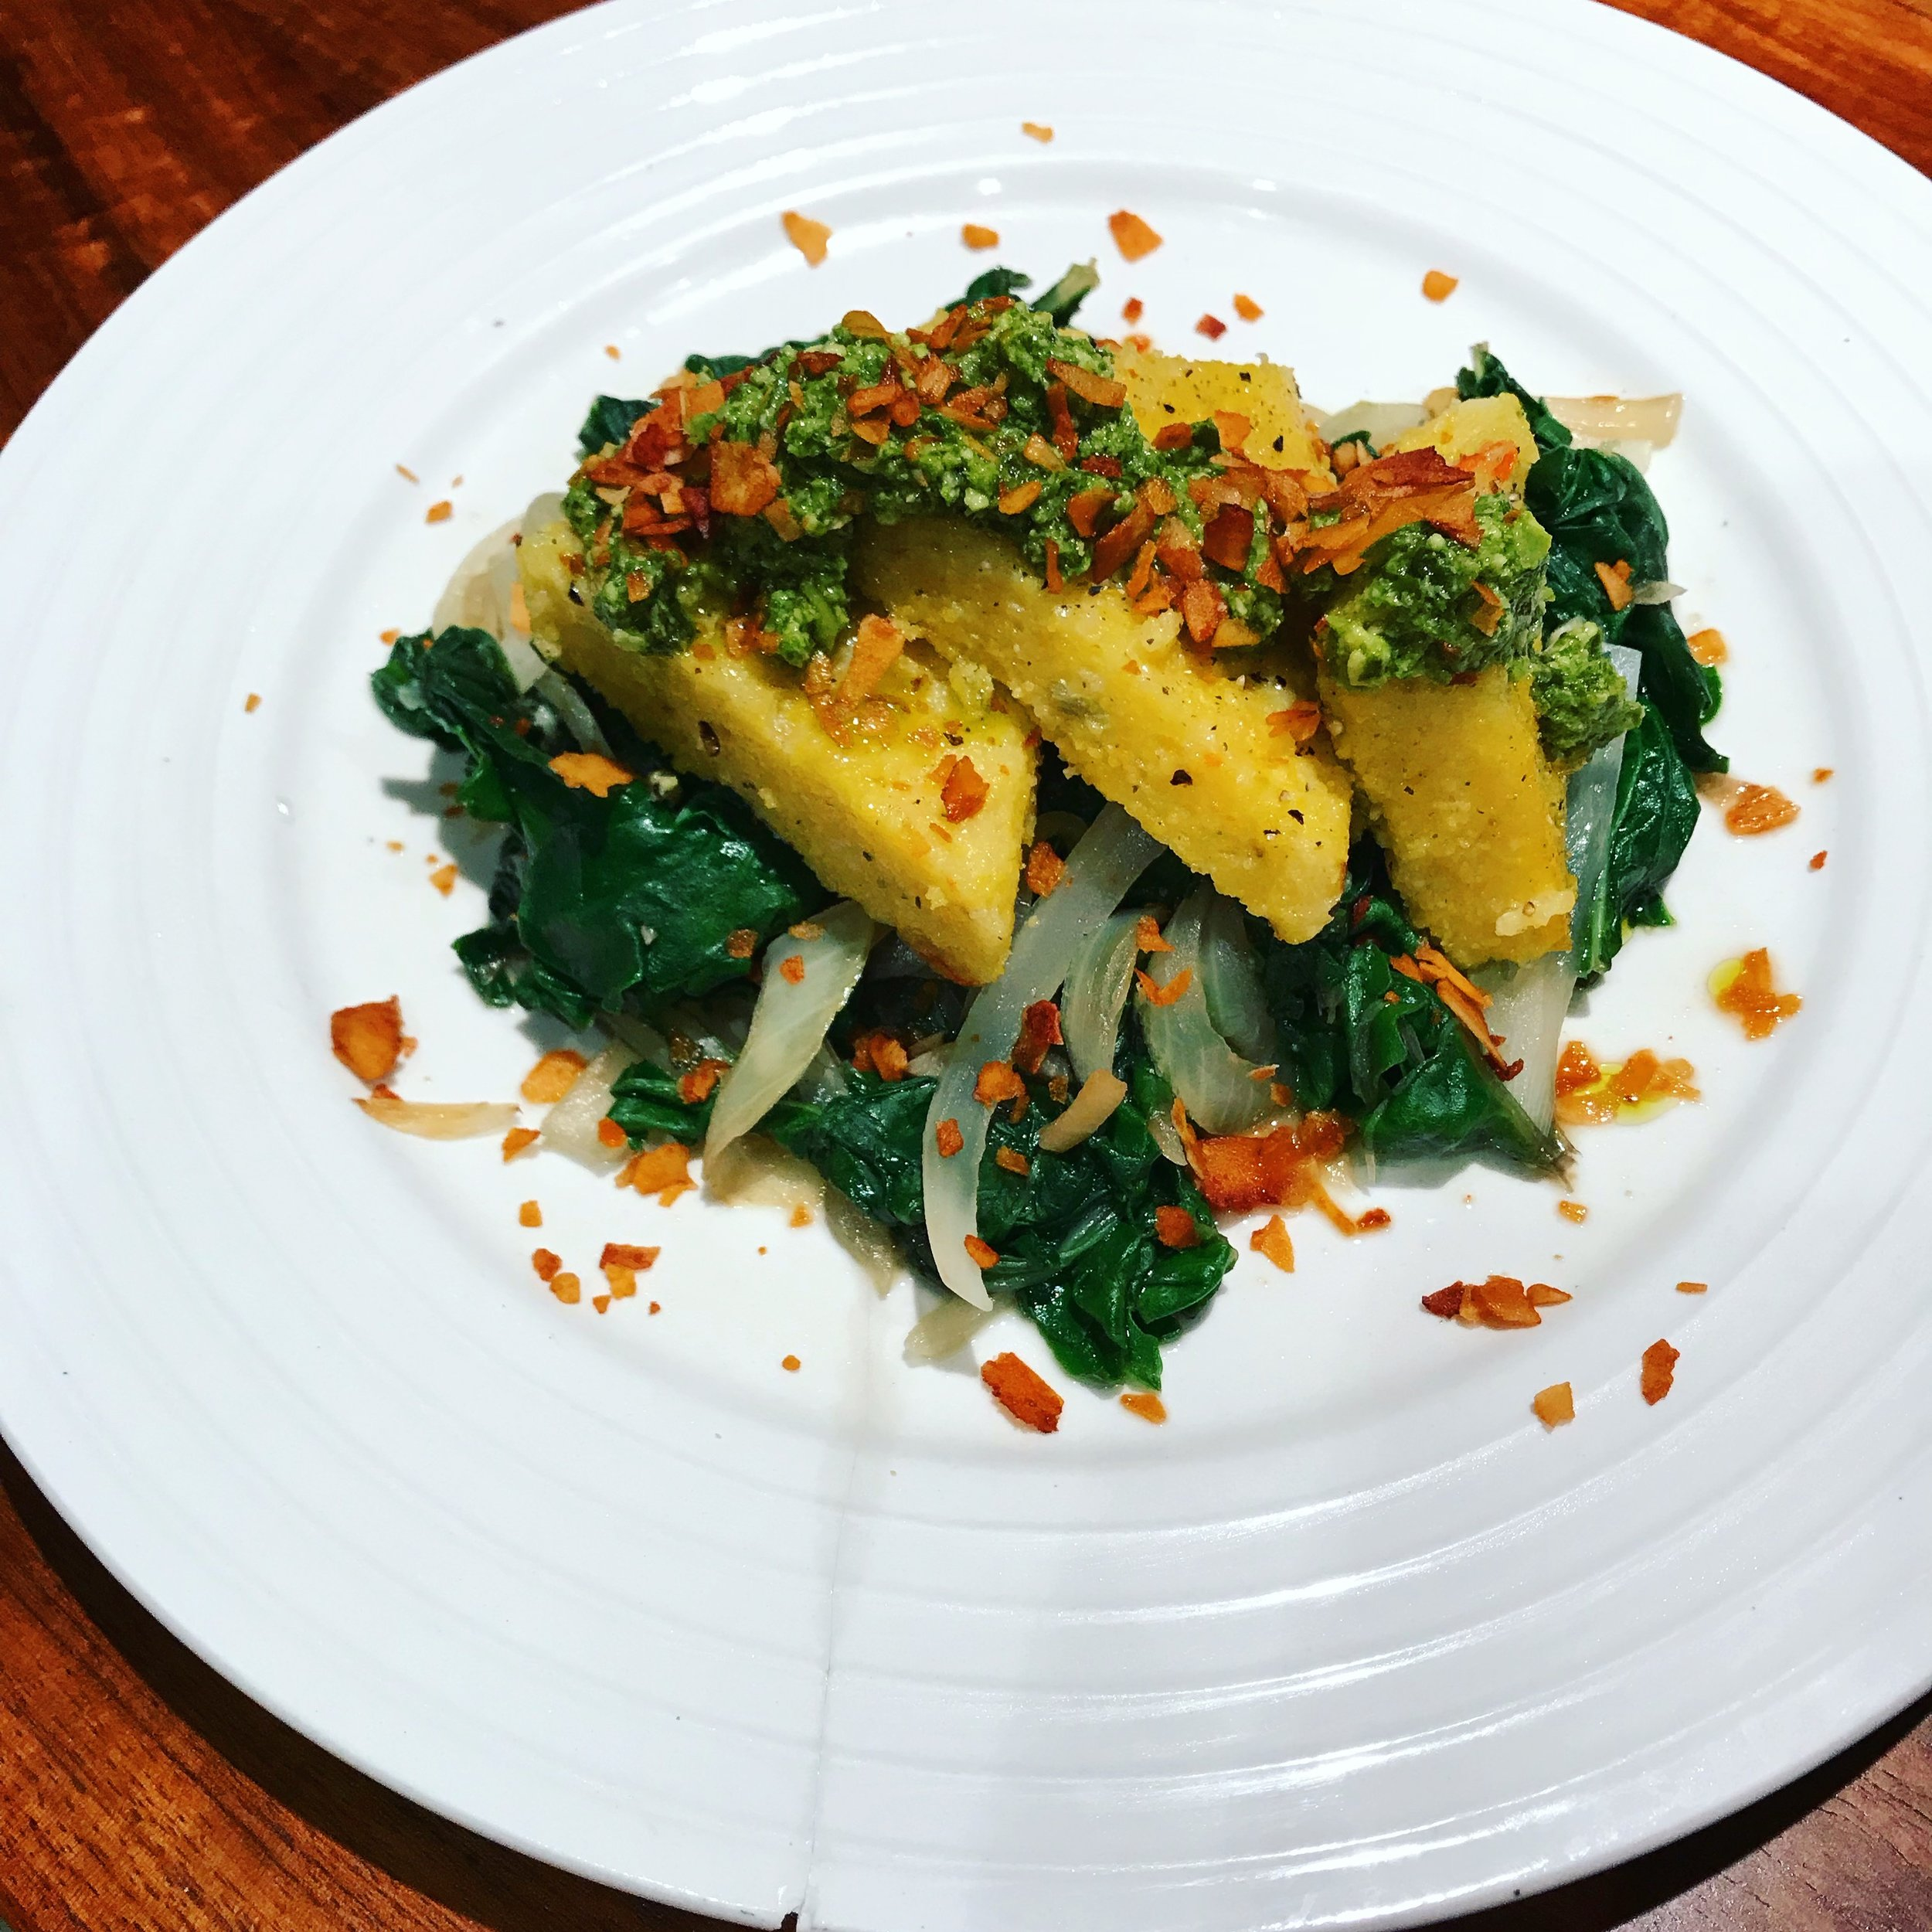 """Polenta triangles I fried in a bit of oil, put them on top of more greens and topped with my favorite coconut bacon """"Faken Bacon"""". What you can't tell from this picture is that they did not have a even golden-crisp to them. Improvement was definitely needed!"""